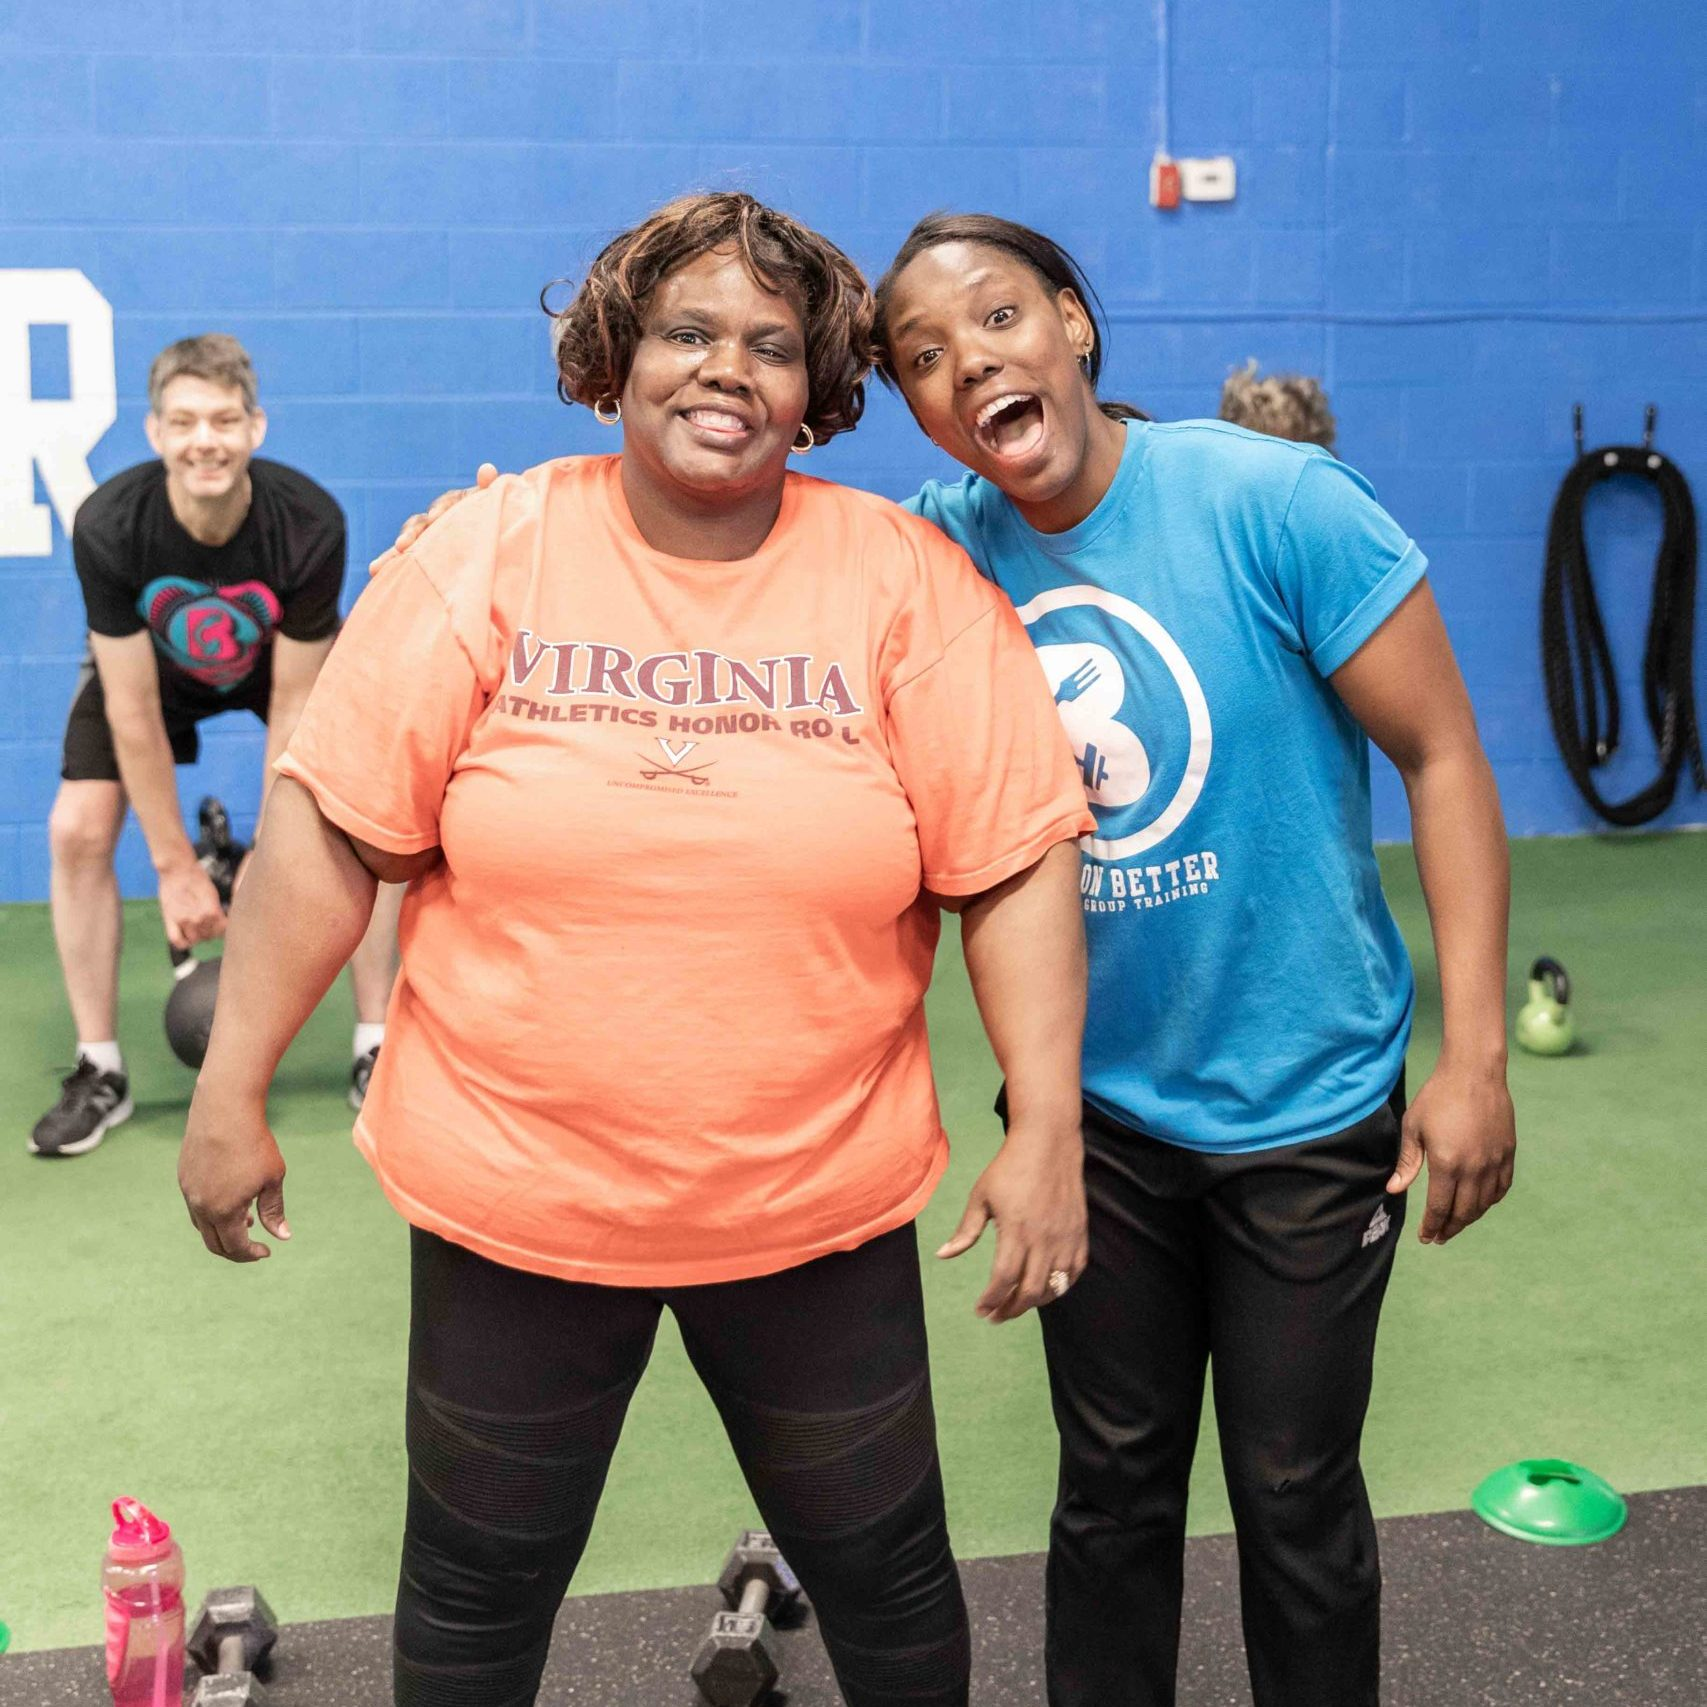 Bent On Better personal training gym west chester pa women black lives matter